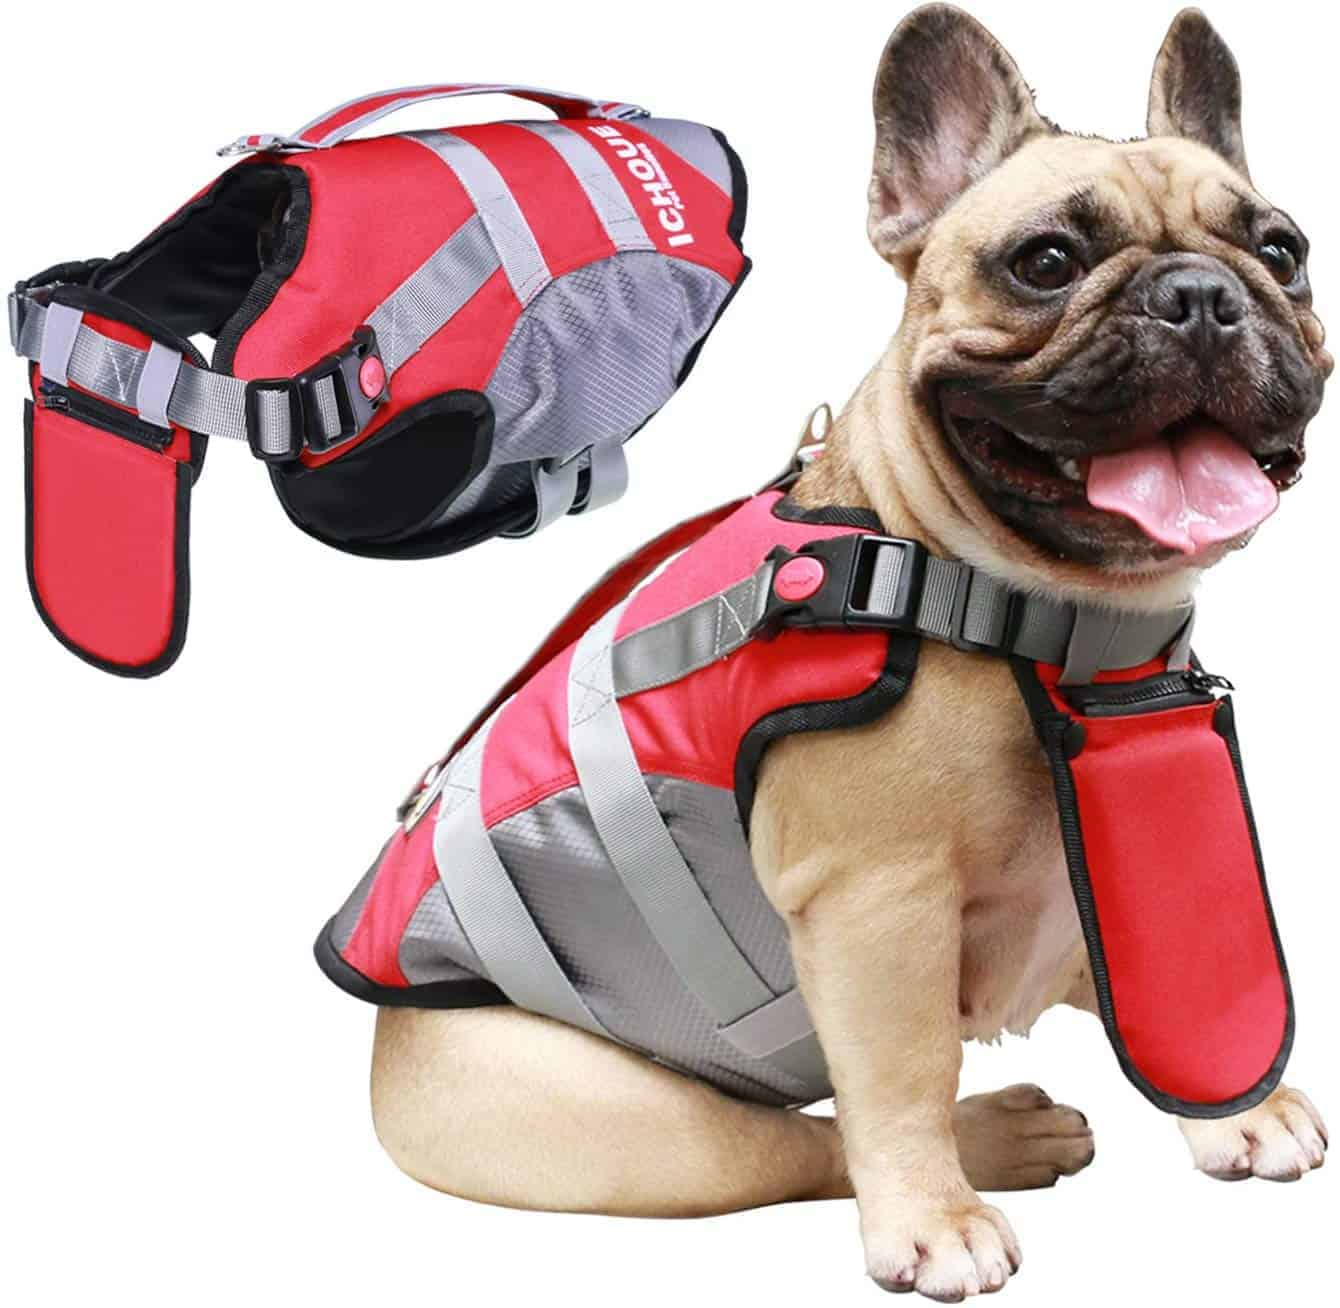 Dog Life Jacket Reviews